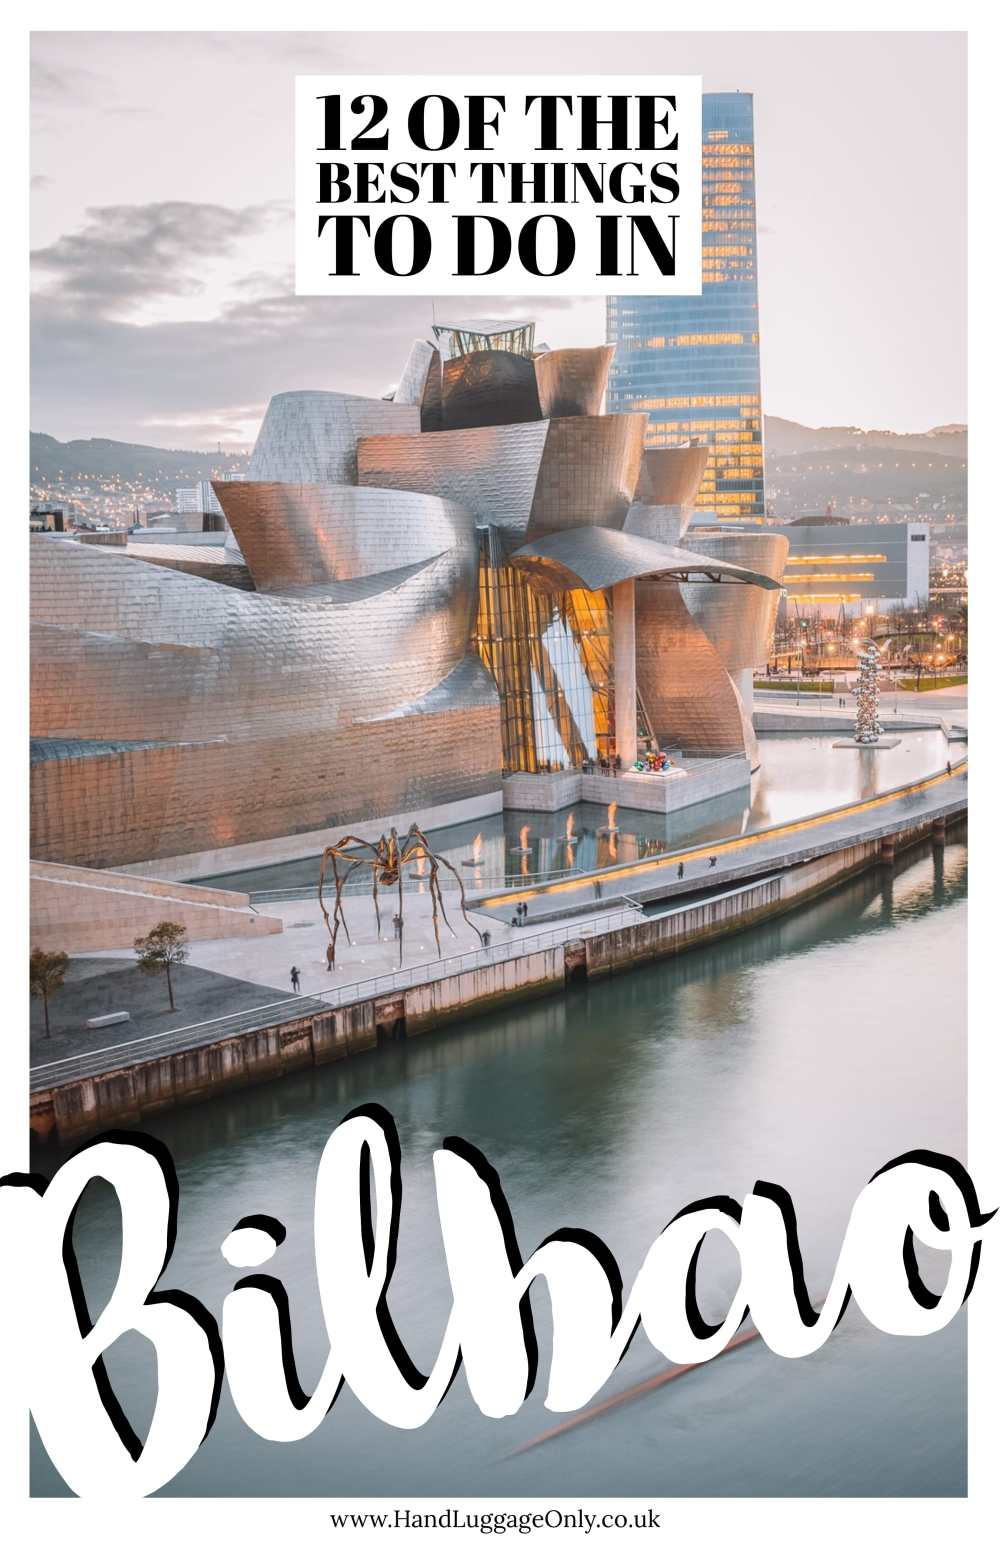 12 Best Things To Do In Bilbao, Spain (1)